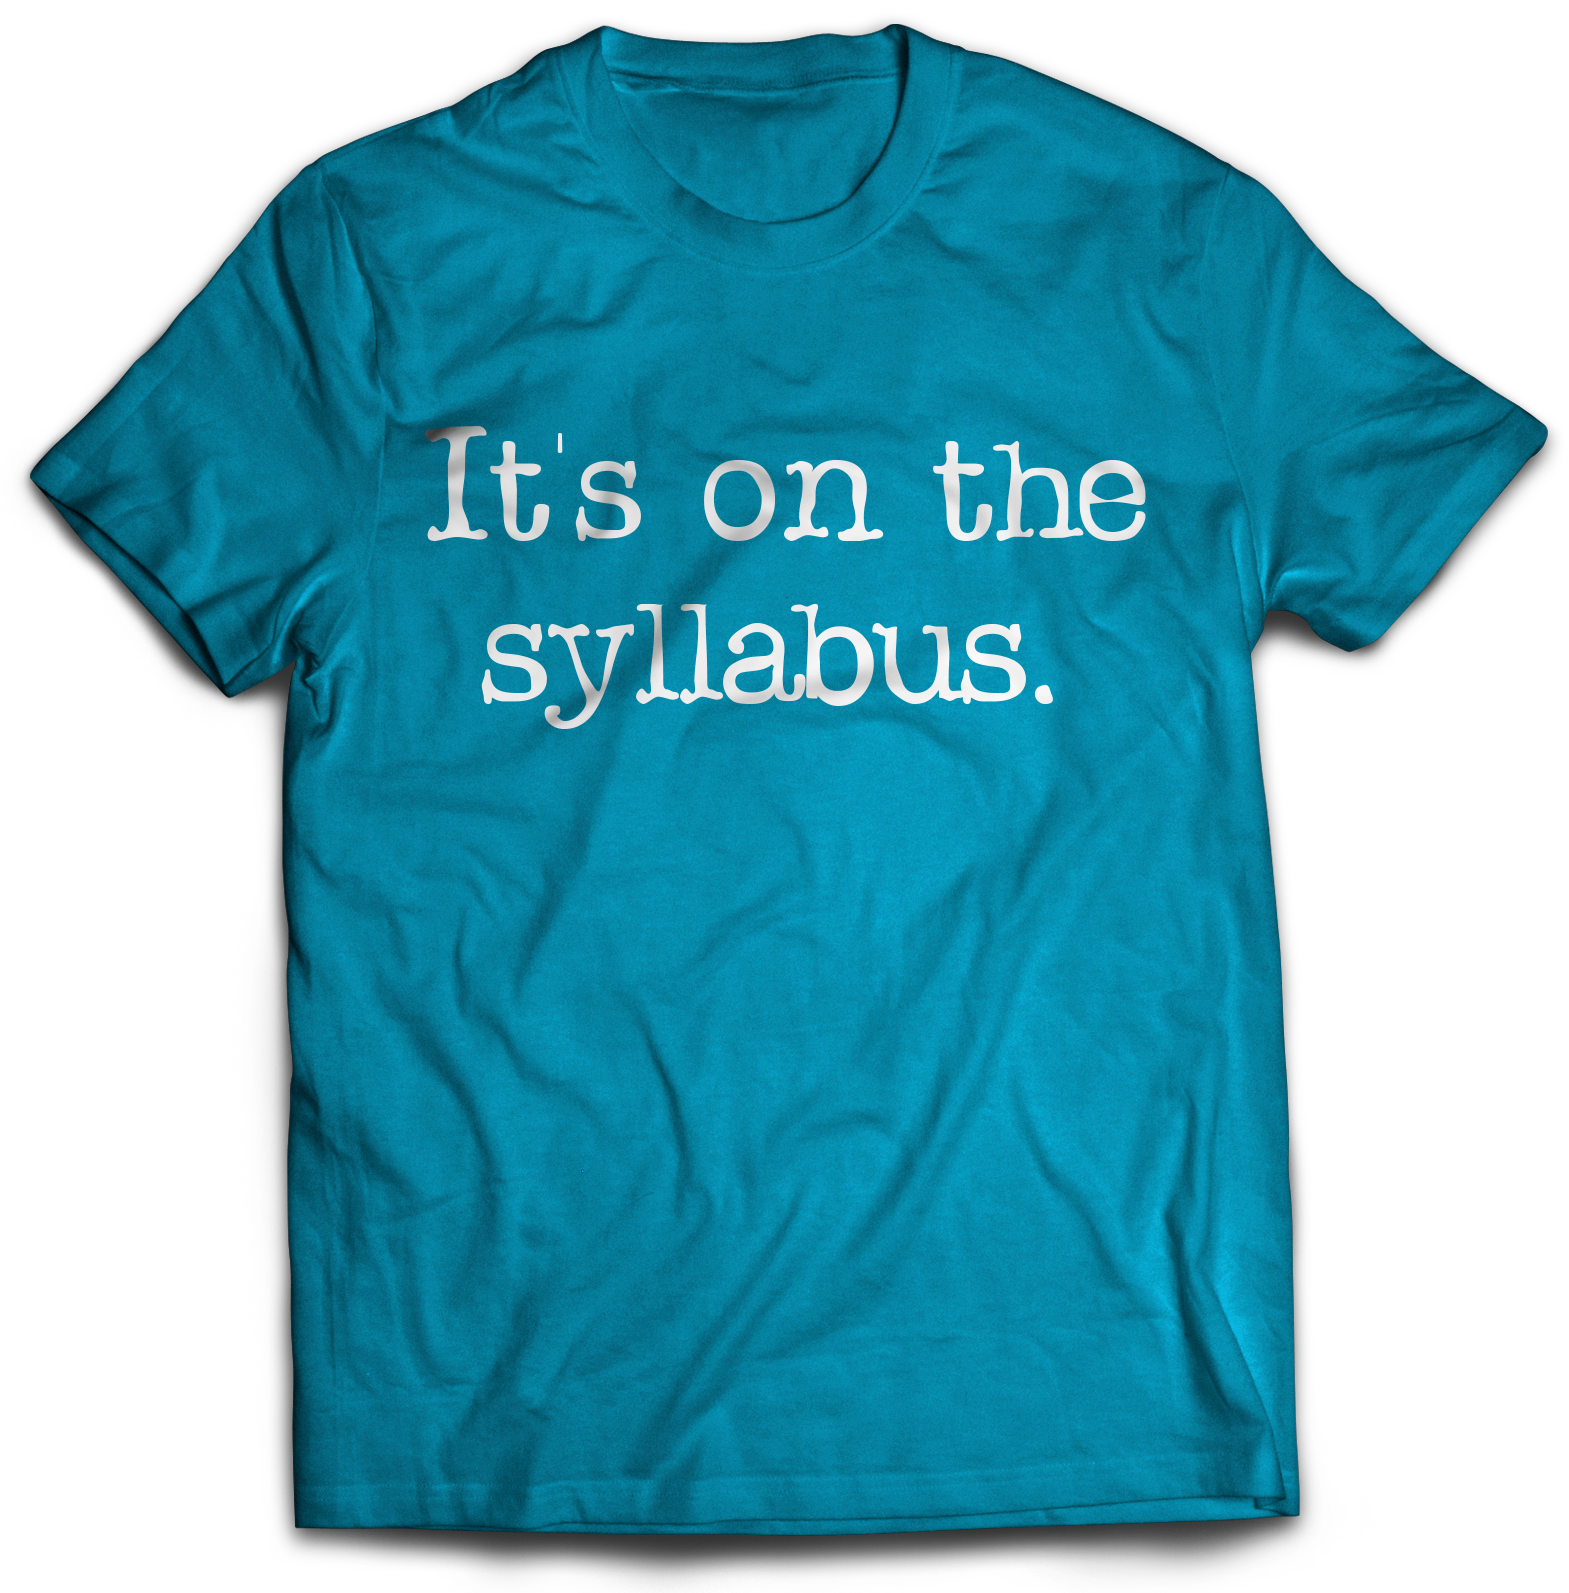 """It's on the syllabus"" tee shirt"